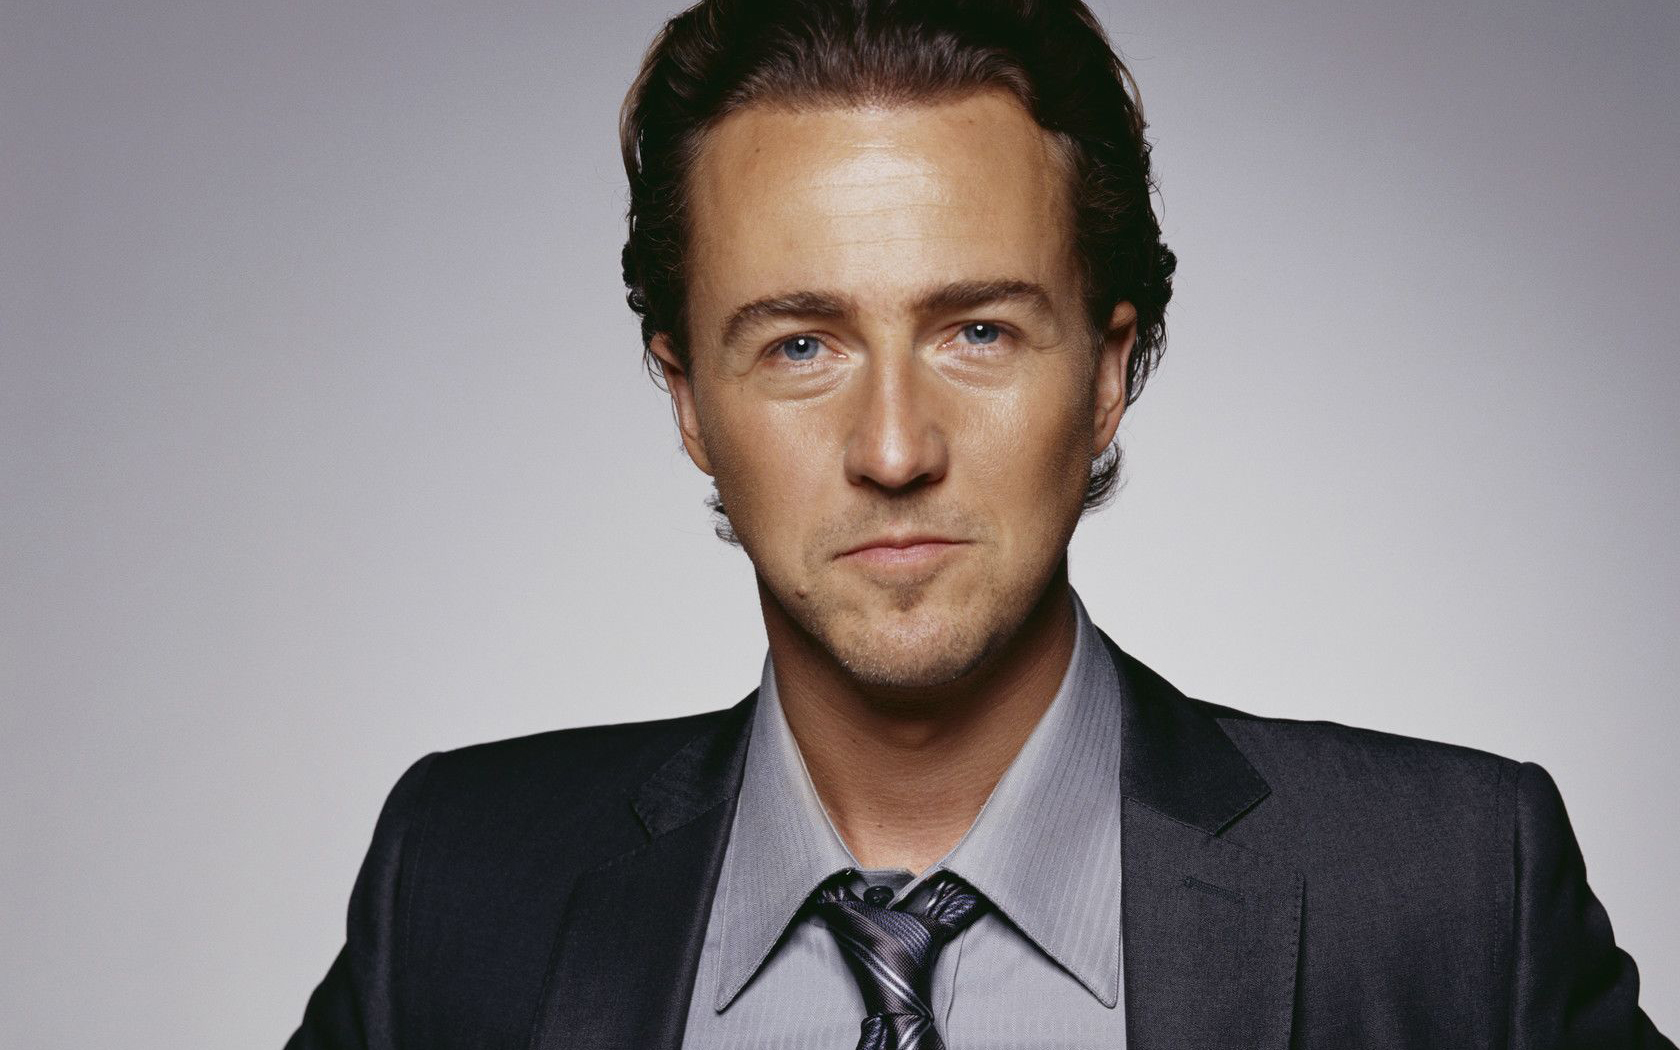 Edward Norton Credit by: Filmforlife